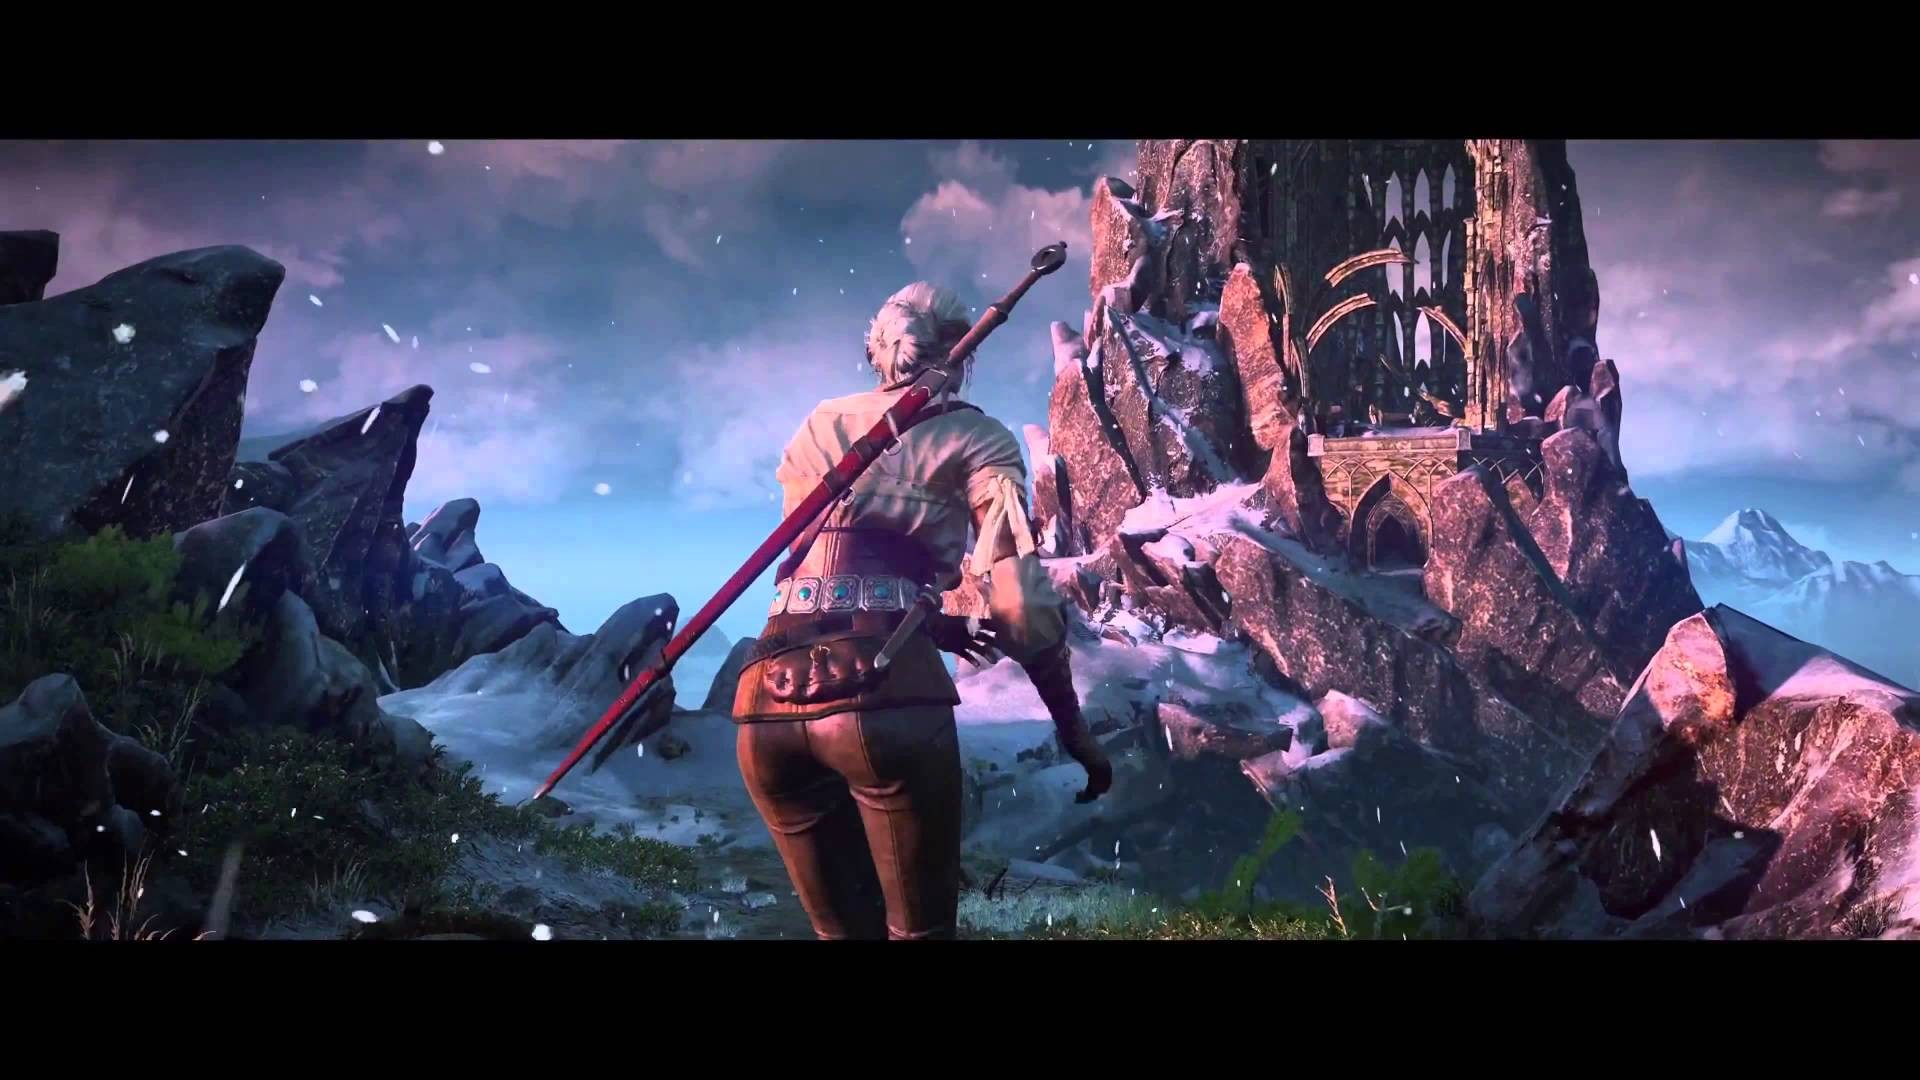 Ultra Hd 4k Wallpapers For Iphone Witcher 3 Wallpaper 4k 183 ① Download Free Wallpapers For